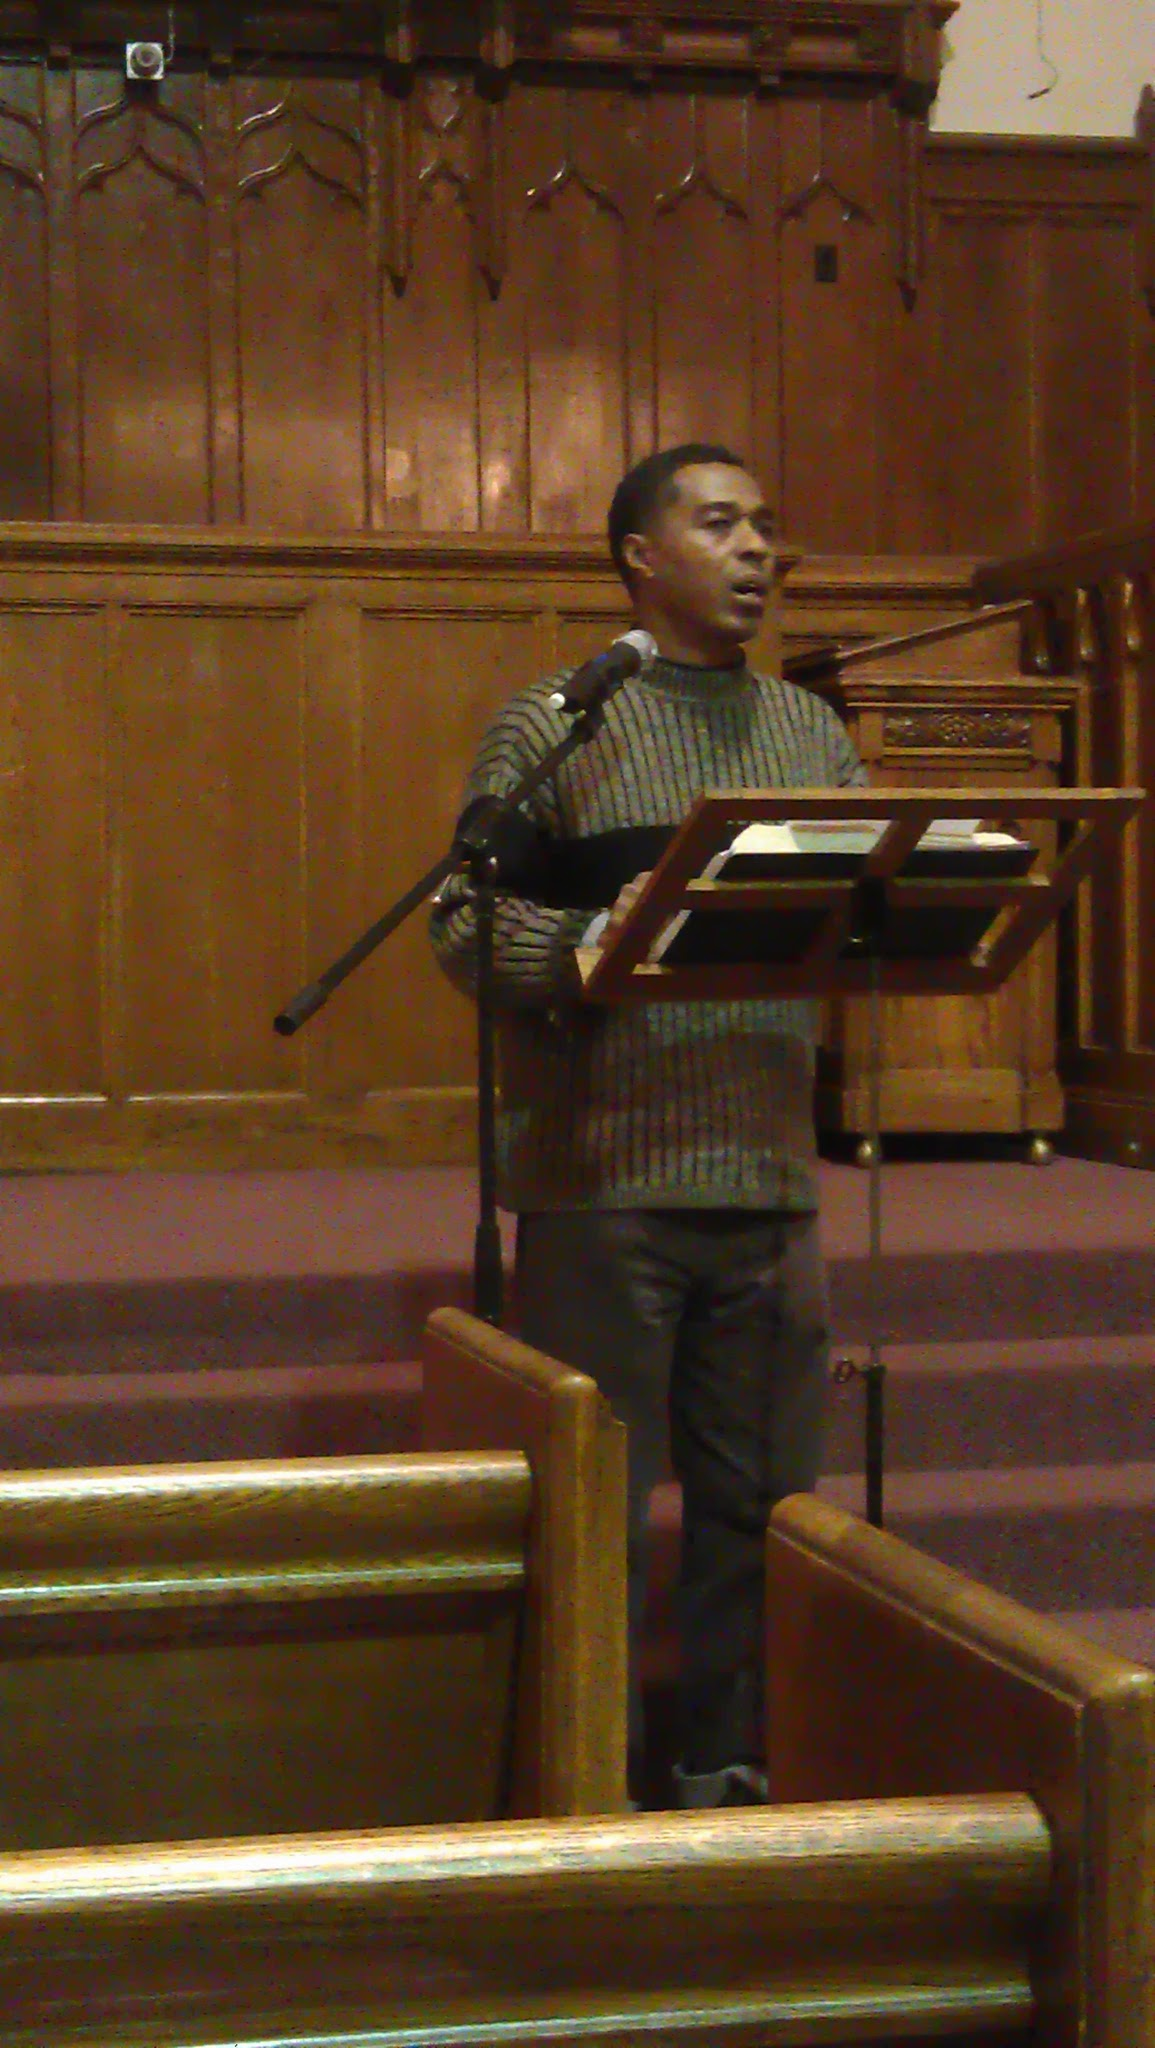 Poverty Action Campaign leader Virgil Crawford